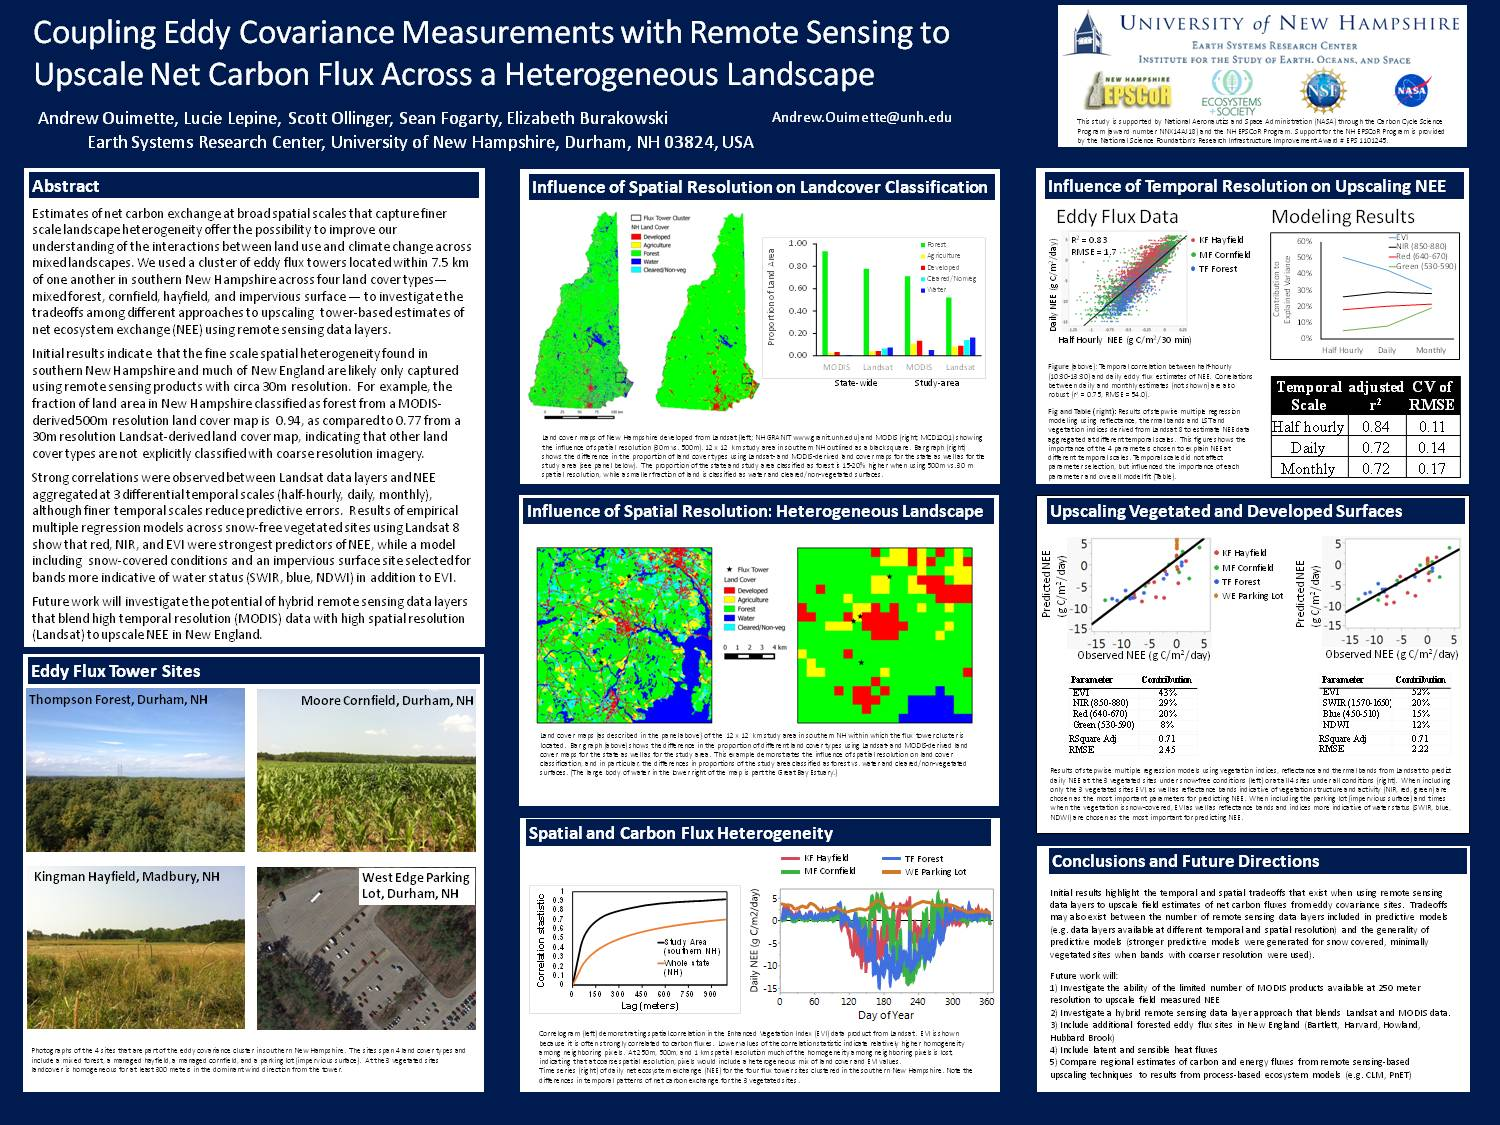 Coupling Eddy Covariance Measurements With Remote Sensing To Upscale Net Carbon Flux Across A Heterogeneous Landscape by lucie